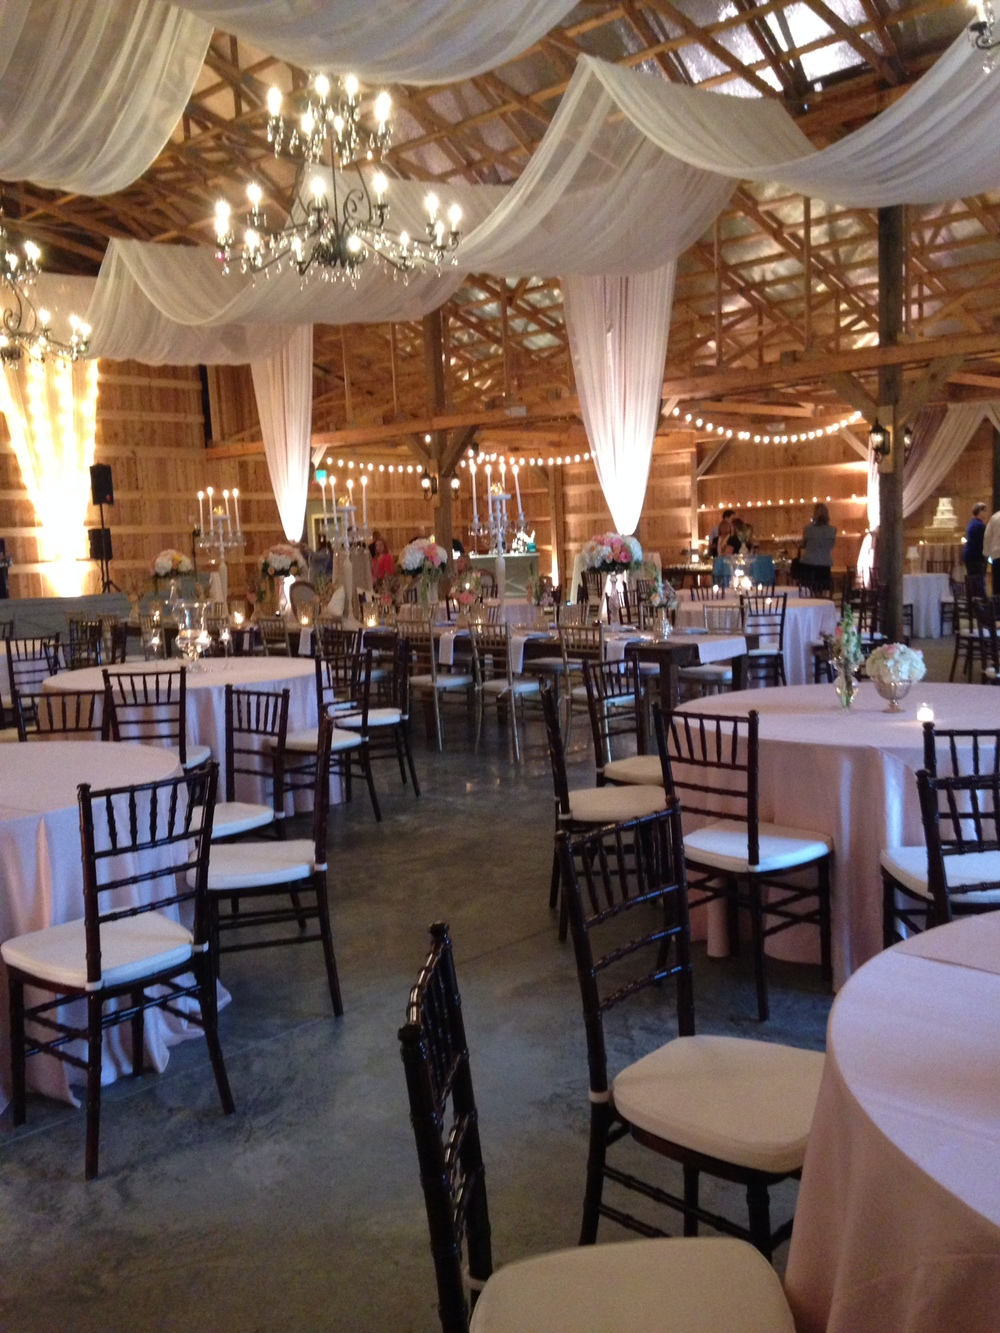 SaddleWoodsFarm-Nashville-Barn-Wedding